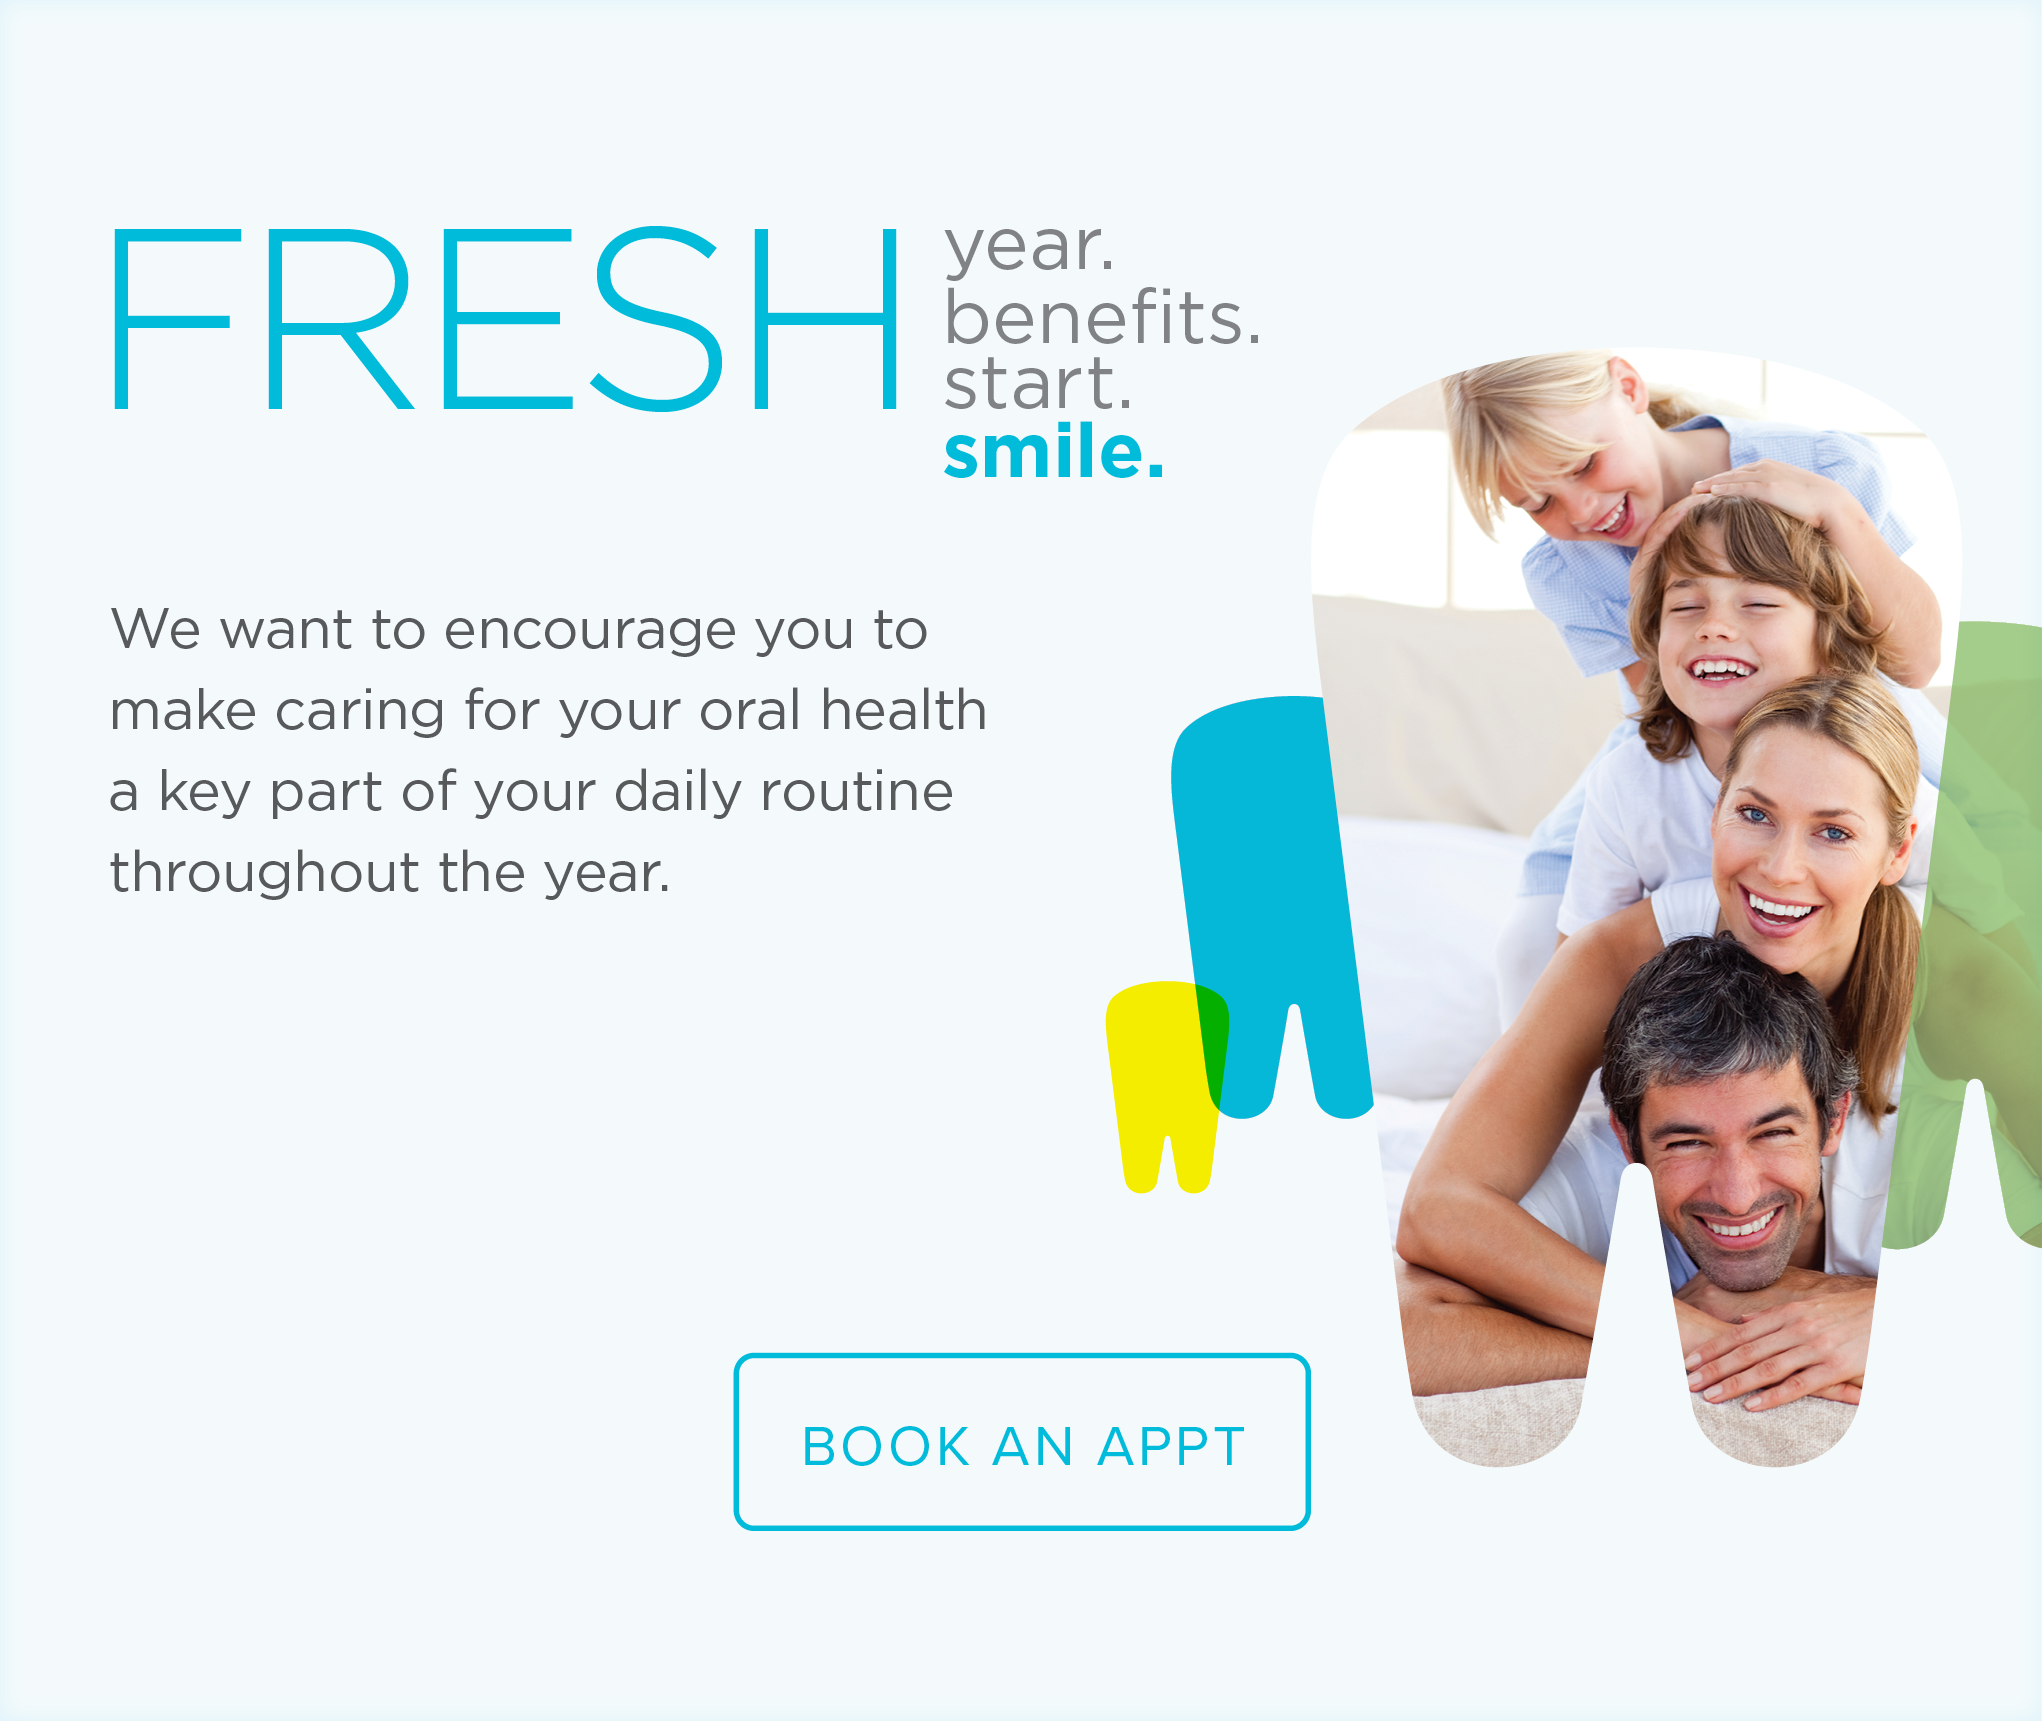 Platt Village Dental Group and Orthodontics - Make the Most of Your Benefits